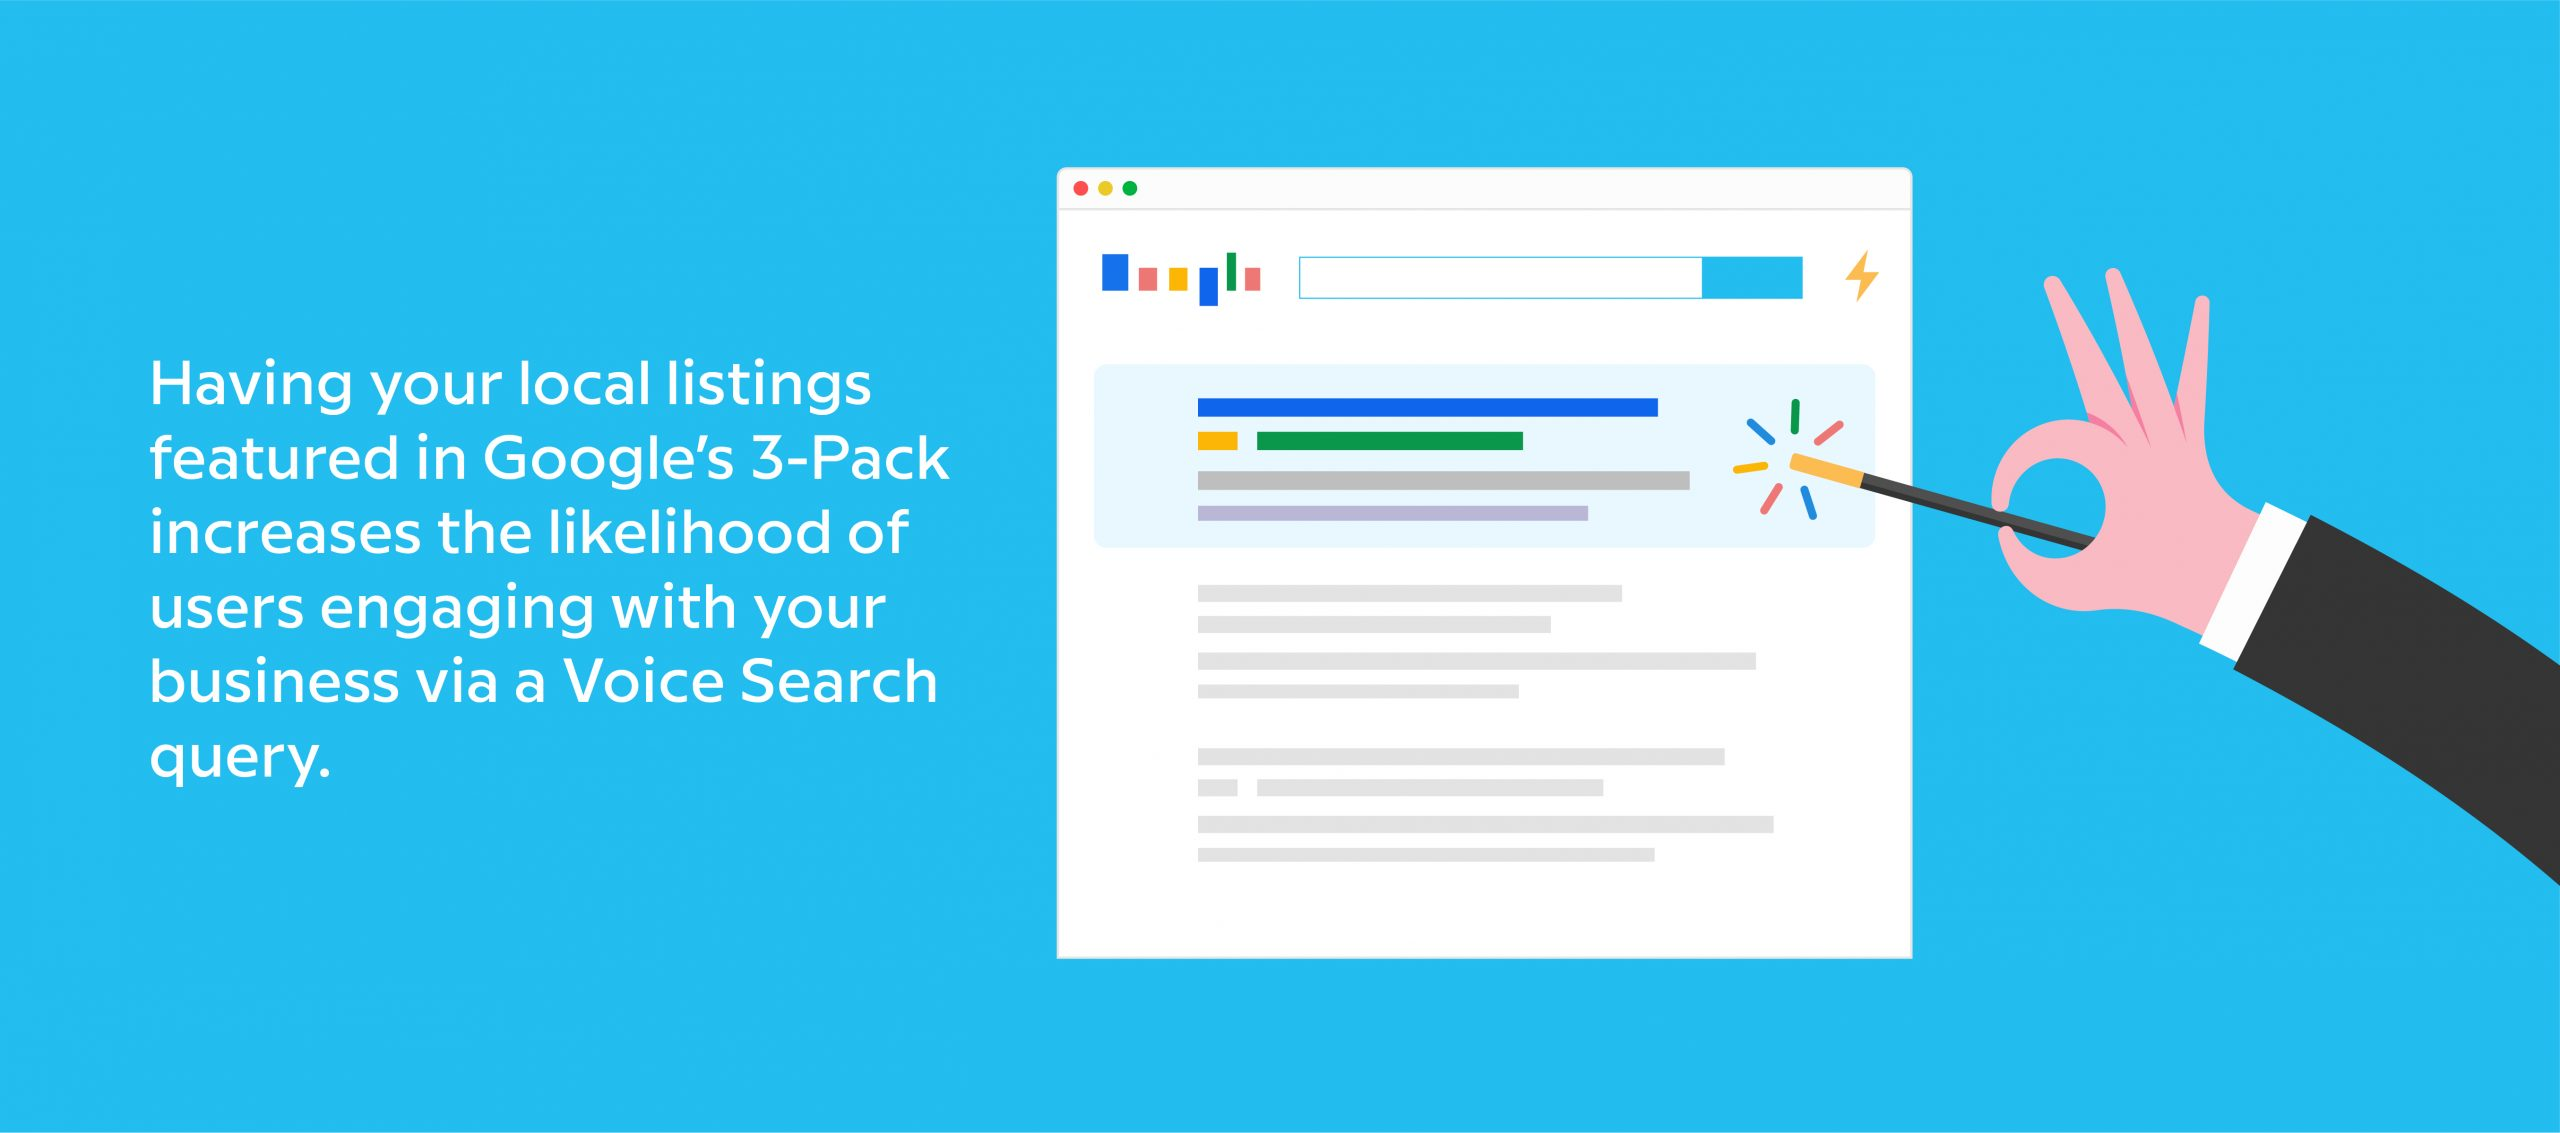 Having your local listings featured in Google's 3-Pack increases the likelihood of users engaging with your business via a Voice Search query.